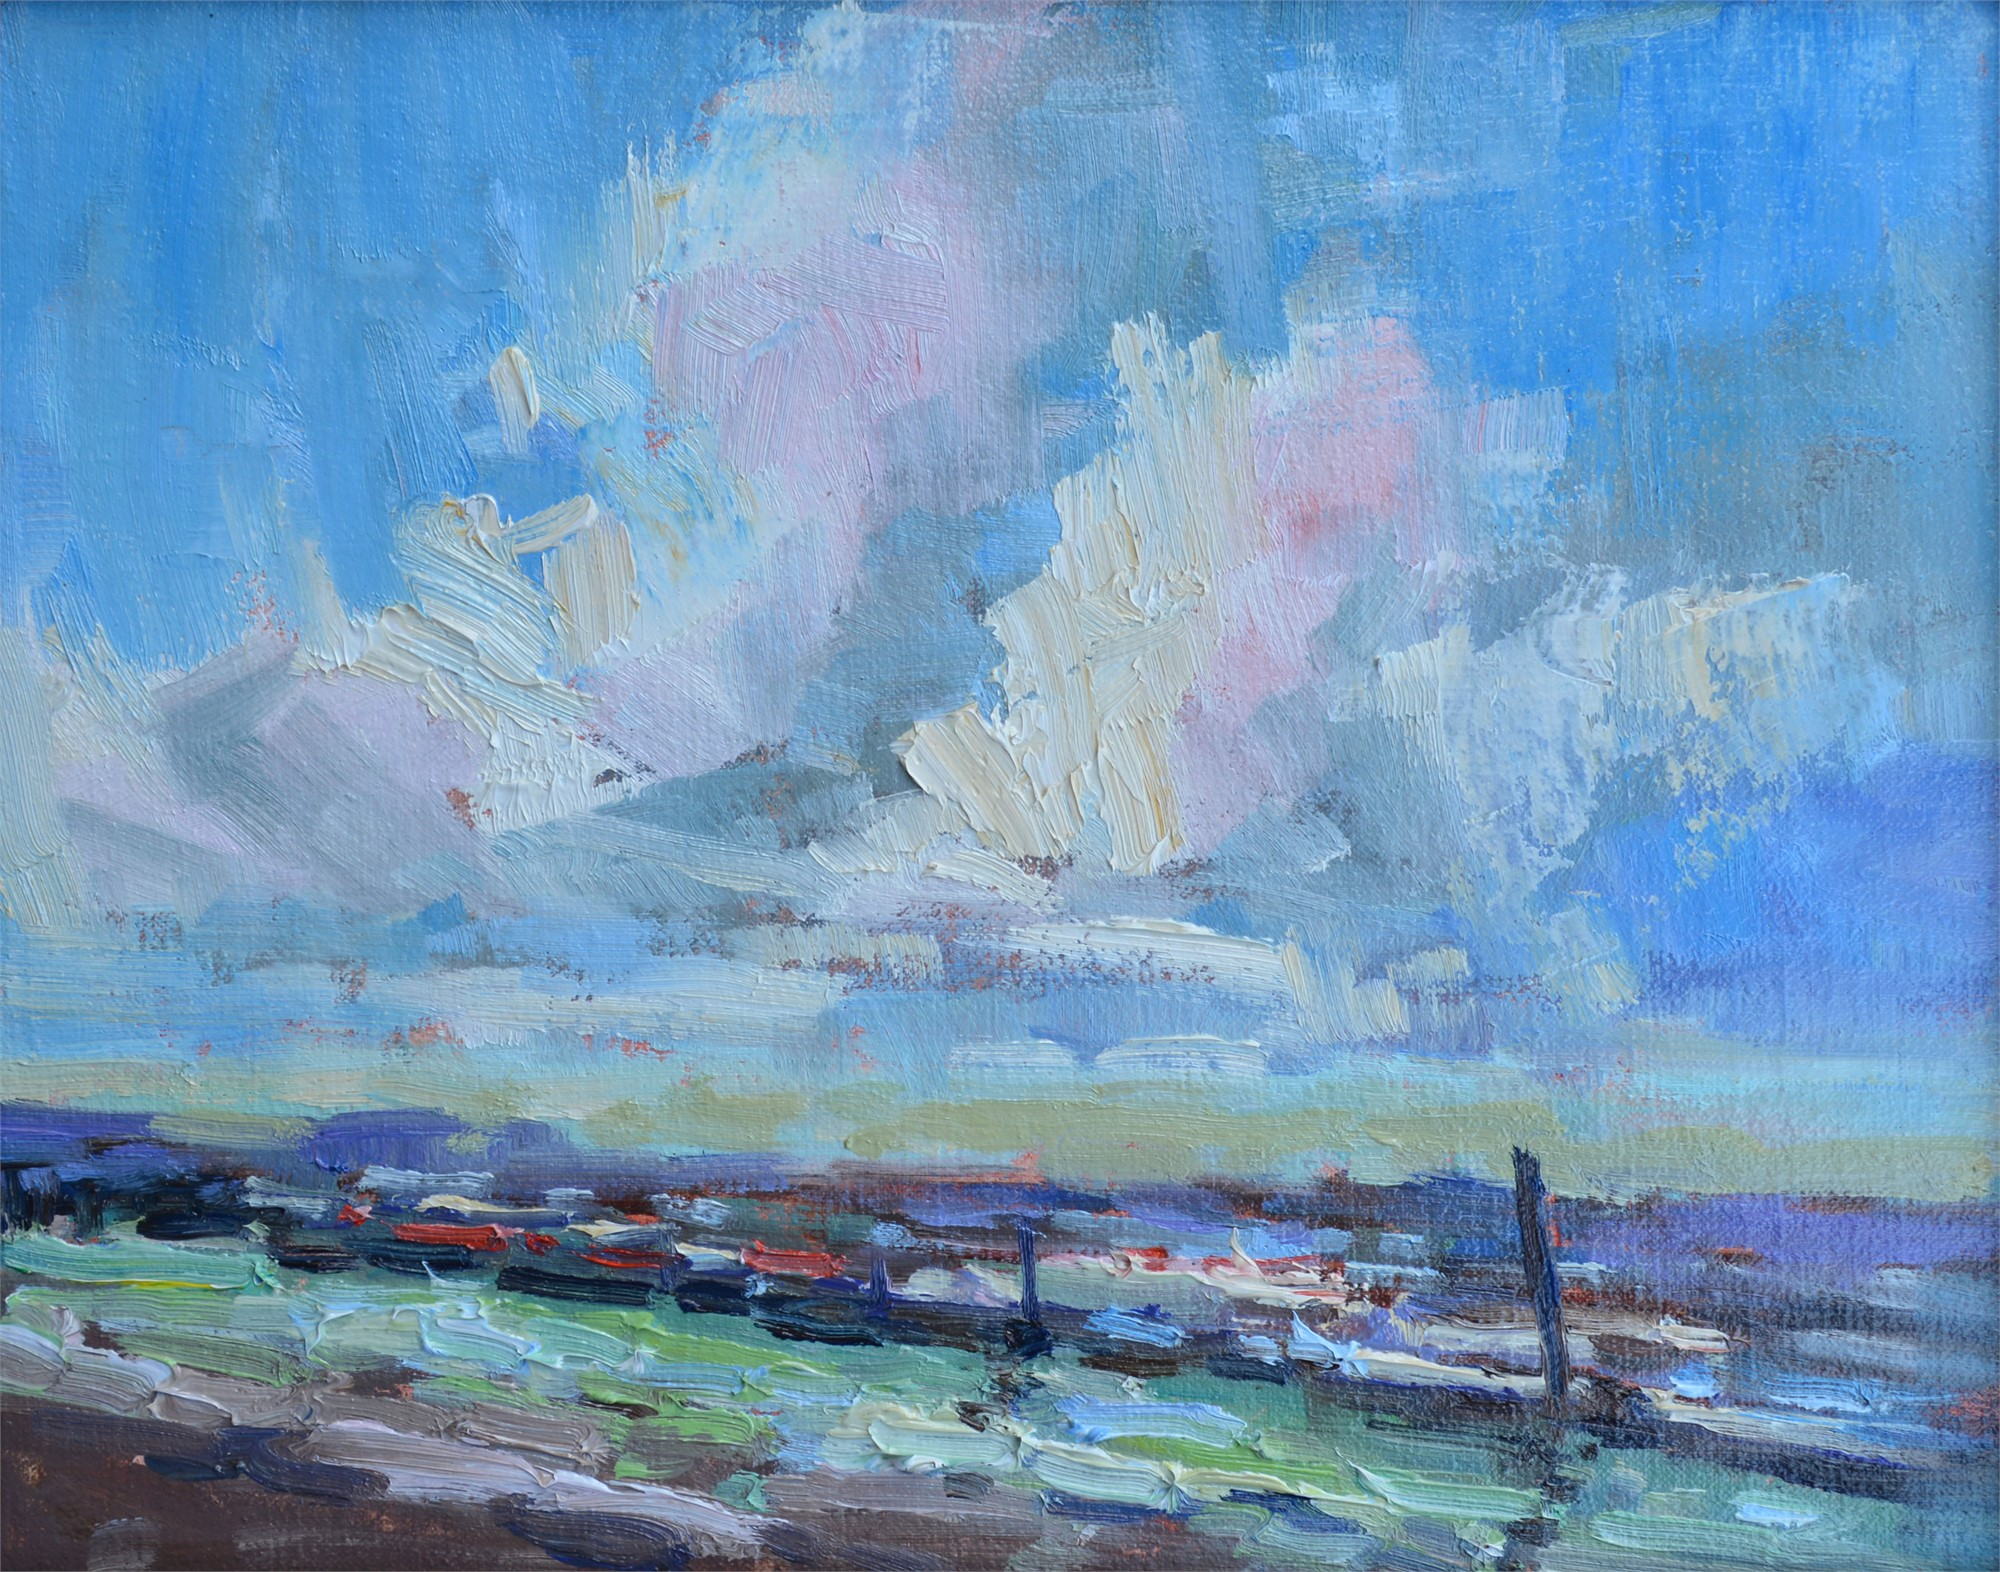 Big Clouds Over the Marina by Karen Hewitt Hagan